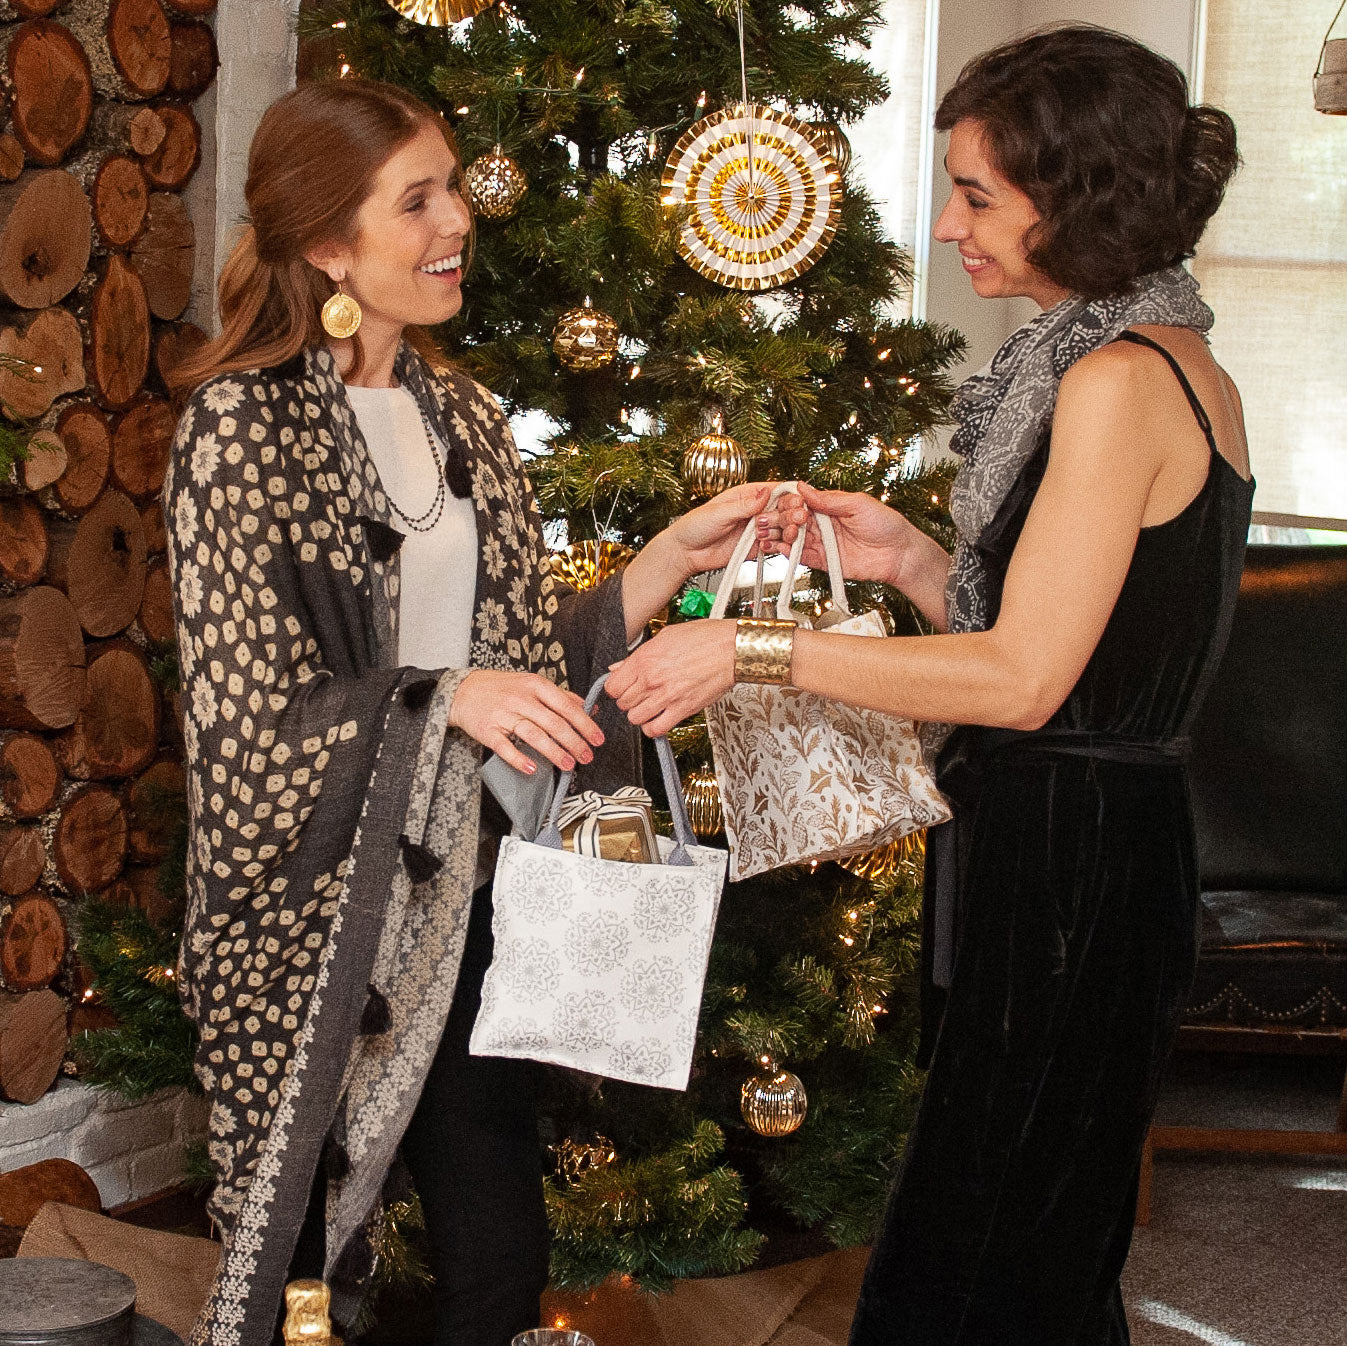 Holiday gift exchange with metallic gold and silver canvas gift bags